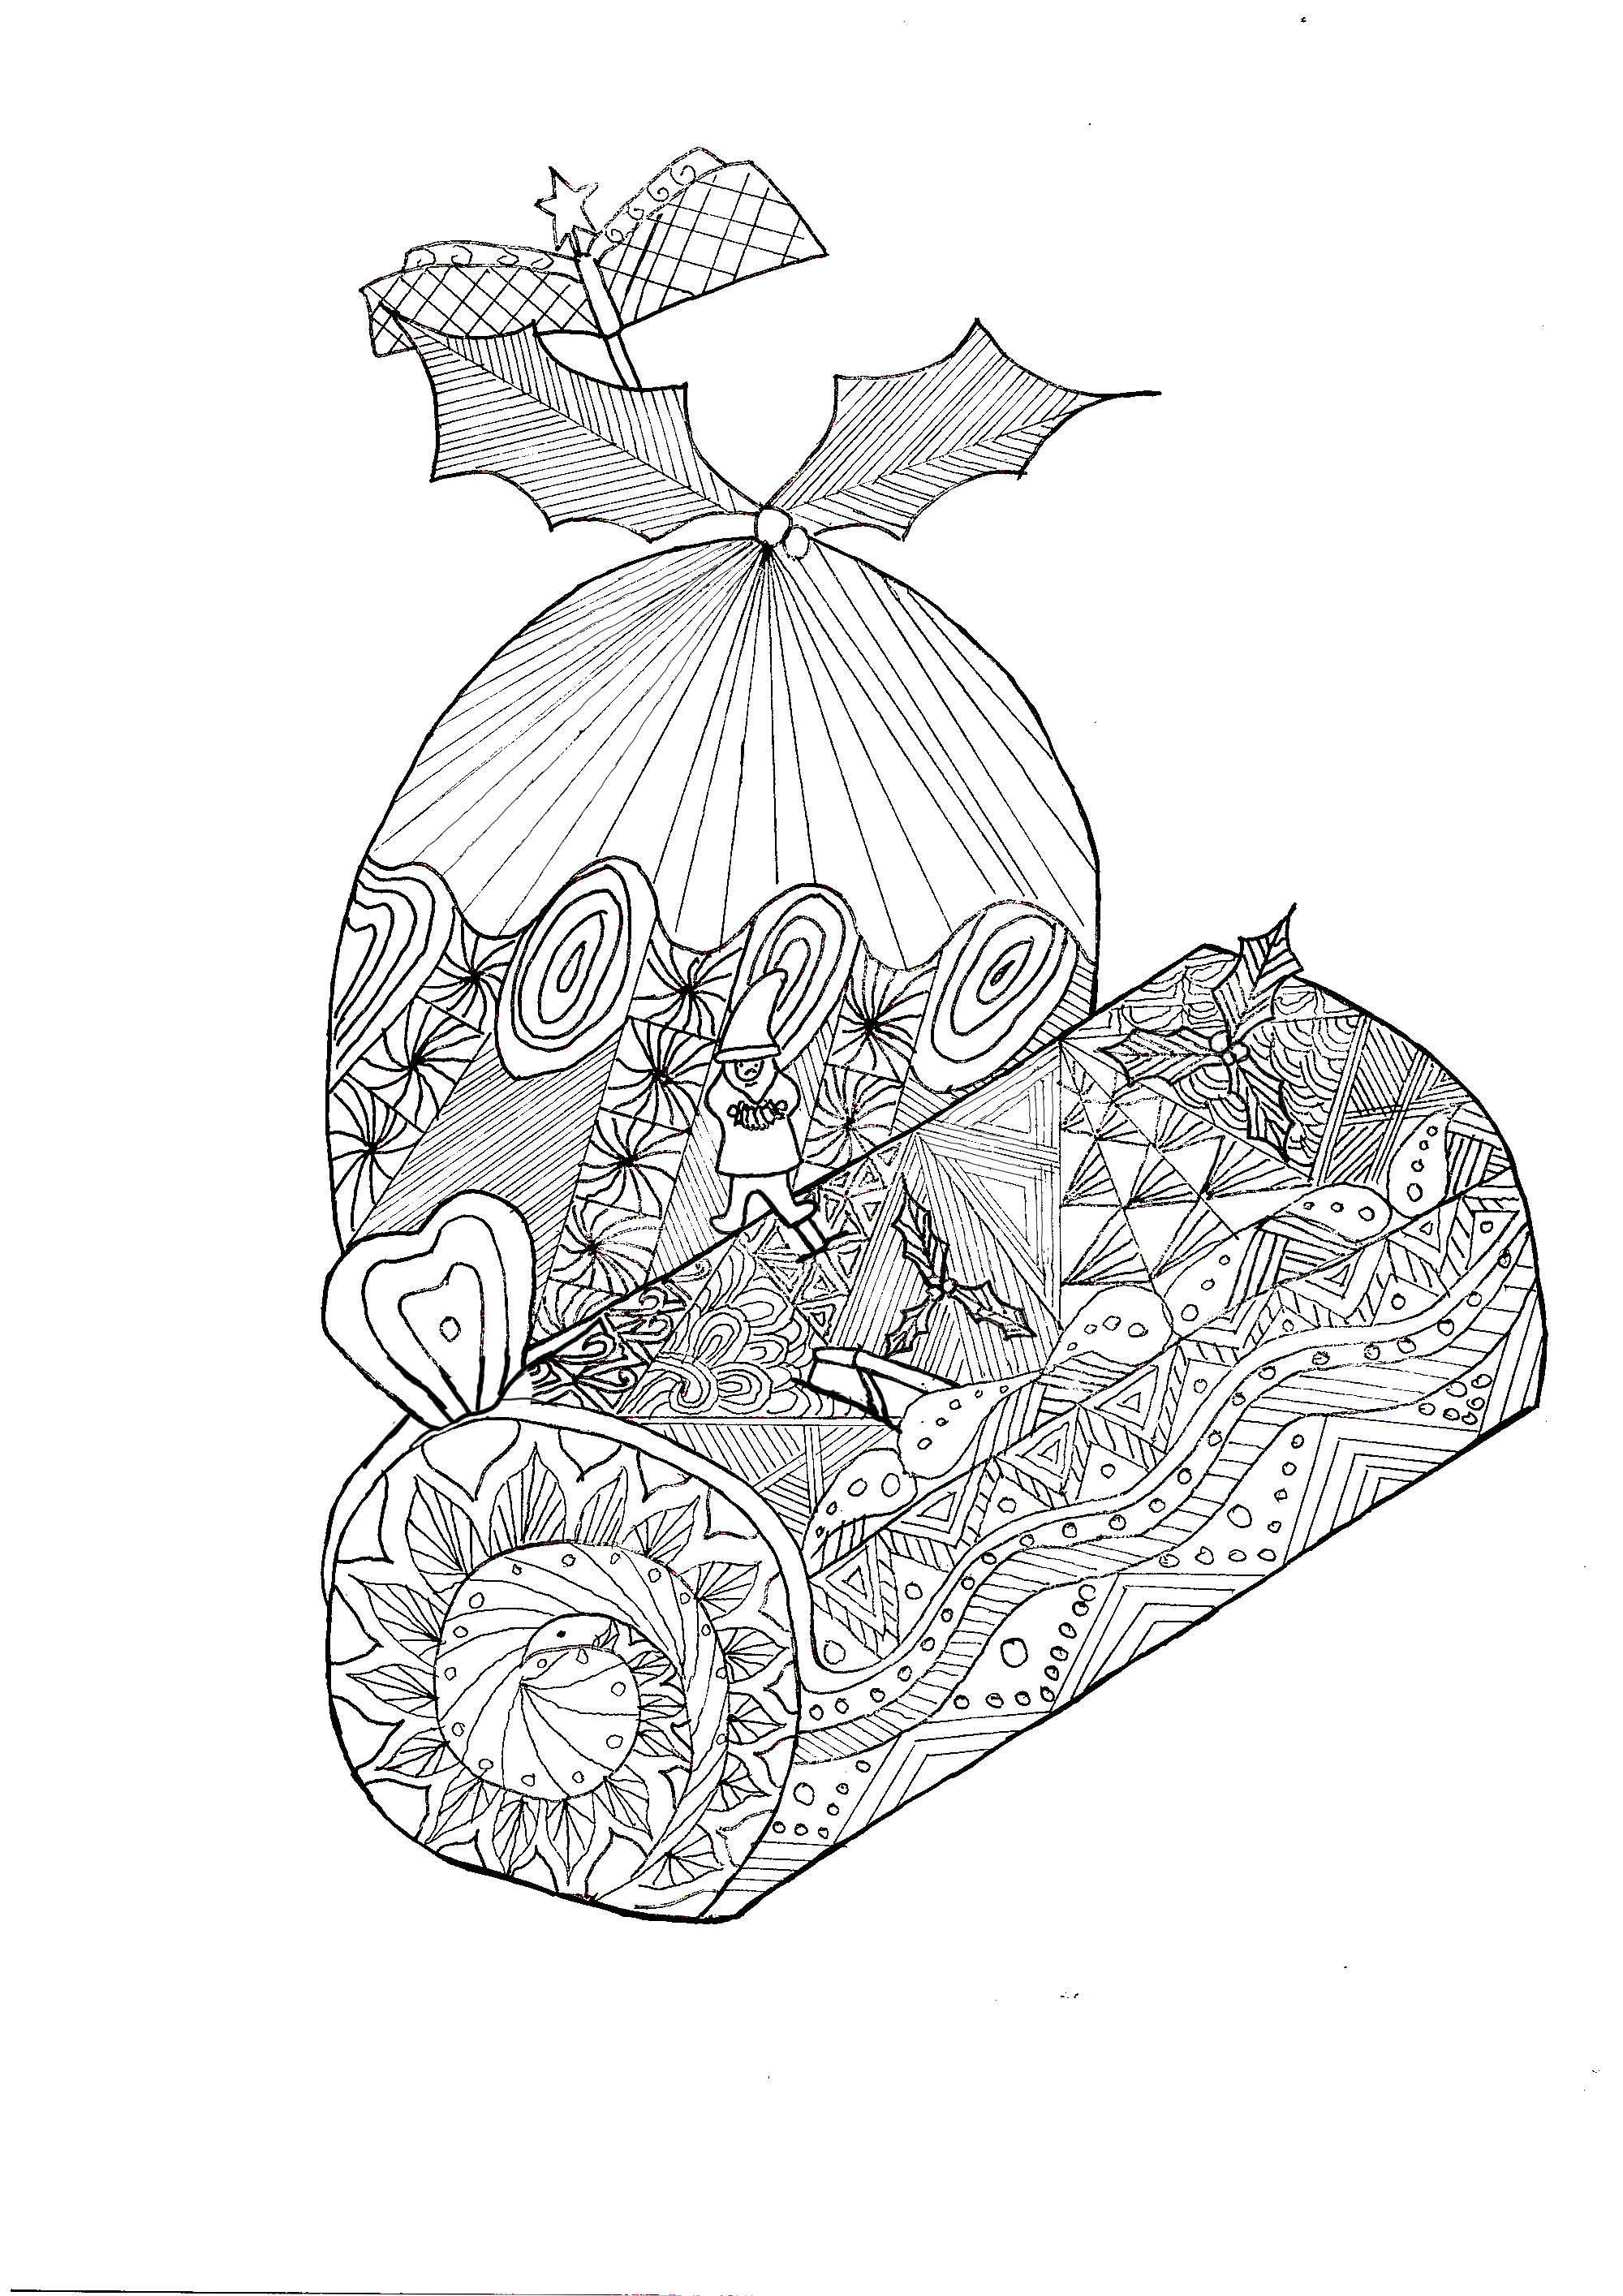 Complex coloring page of a Christmas log with a Christmas egg